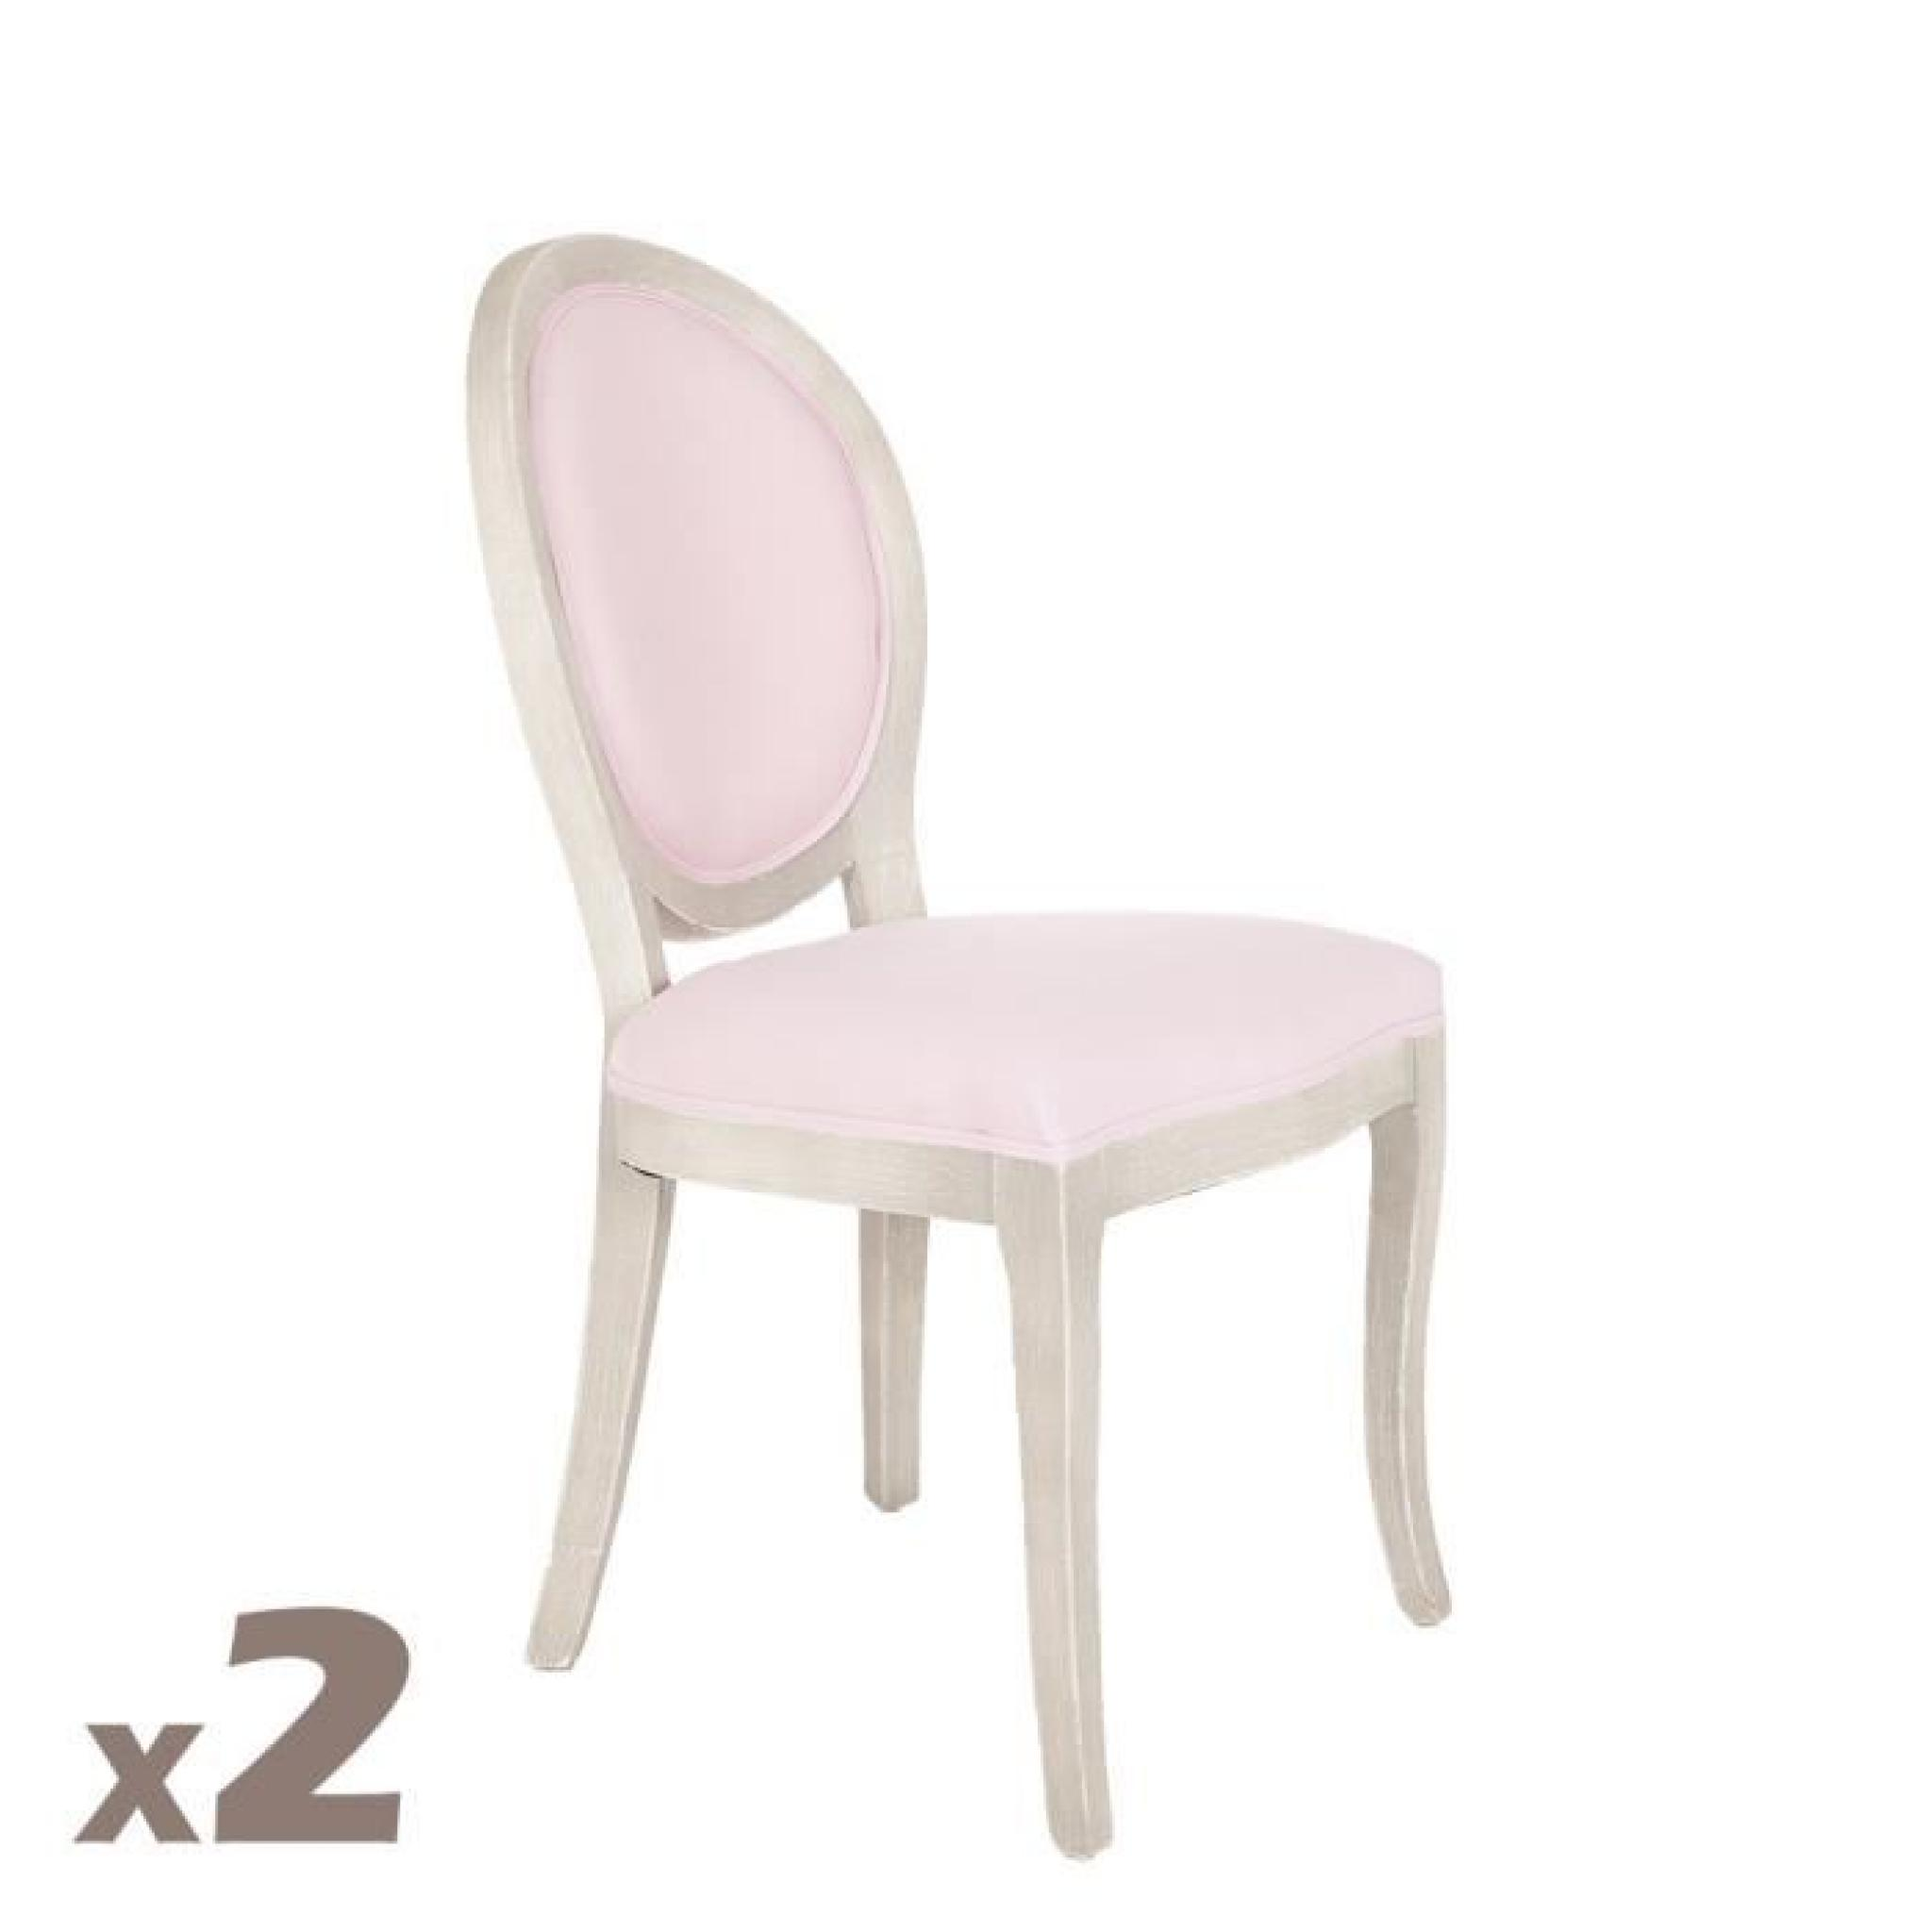 2 chaises m daillon cl on rose achat vente chaise salle a manger pas cher couleur et. Black Bedroom Furniture Sets. Home Design Ideas